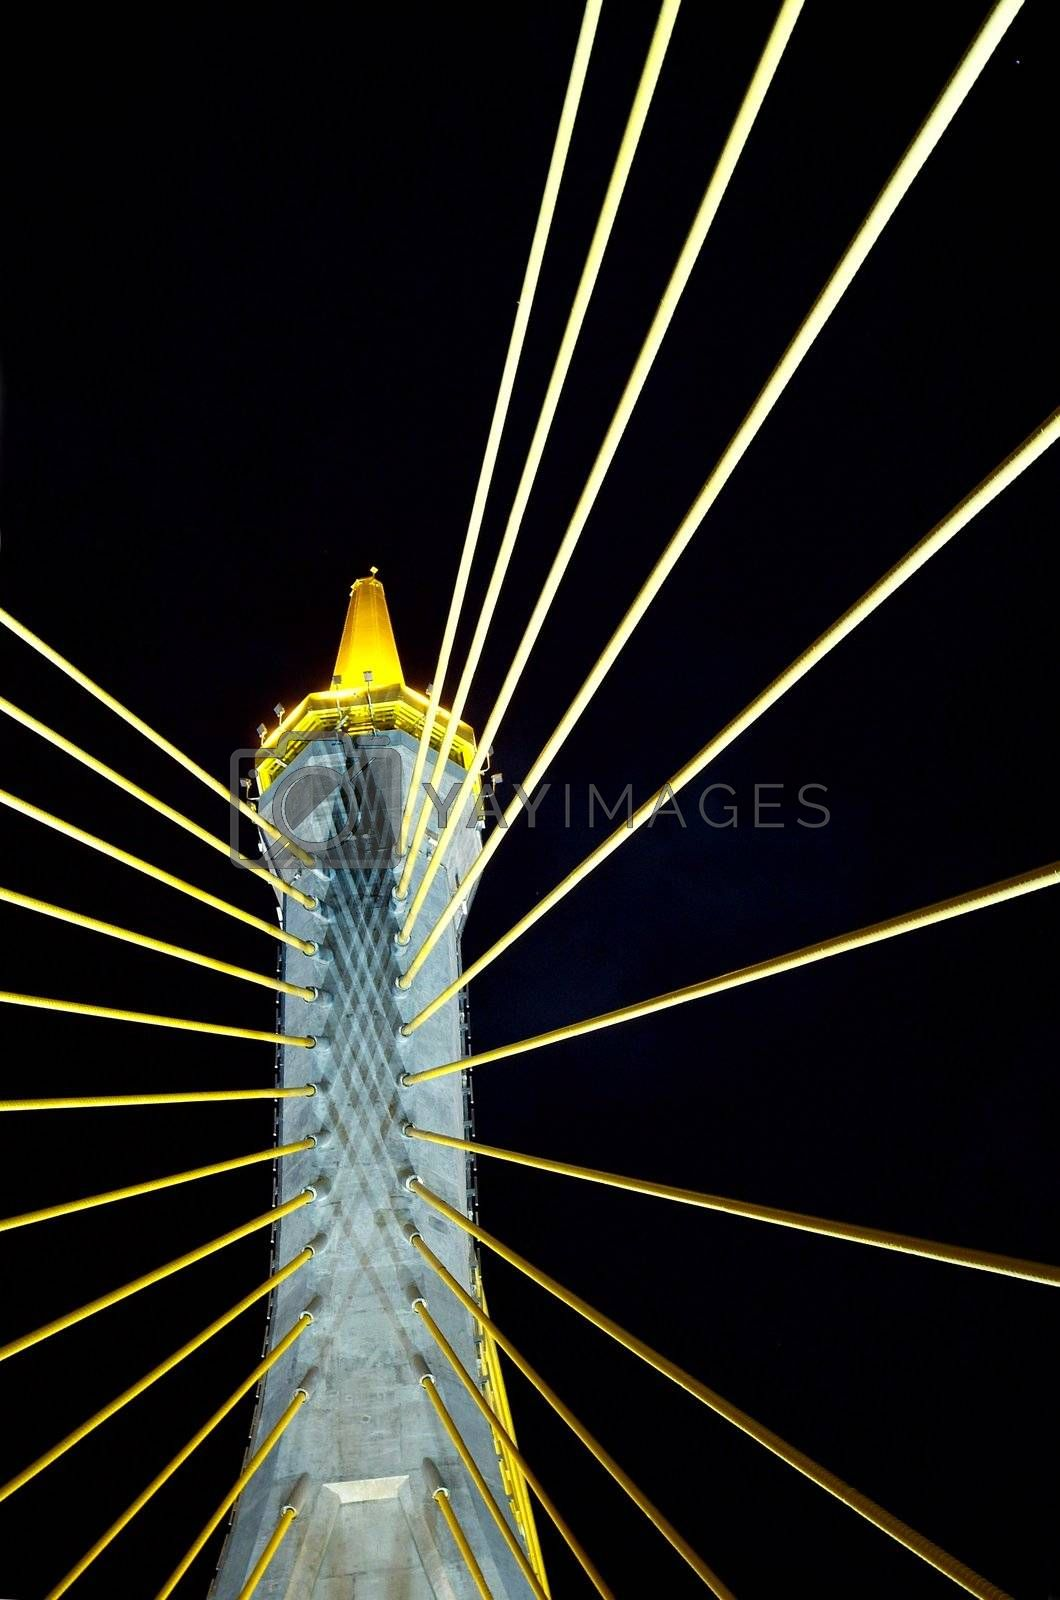 Royalty free image of Detail of suspension bridge by epixx